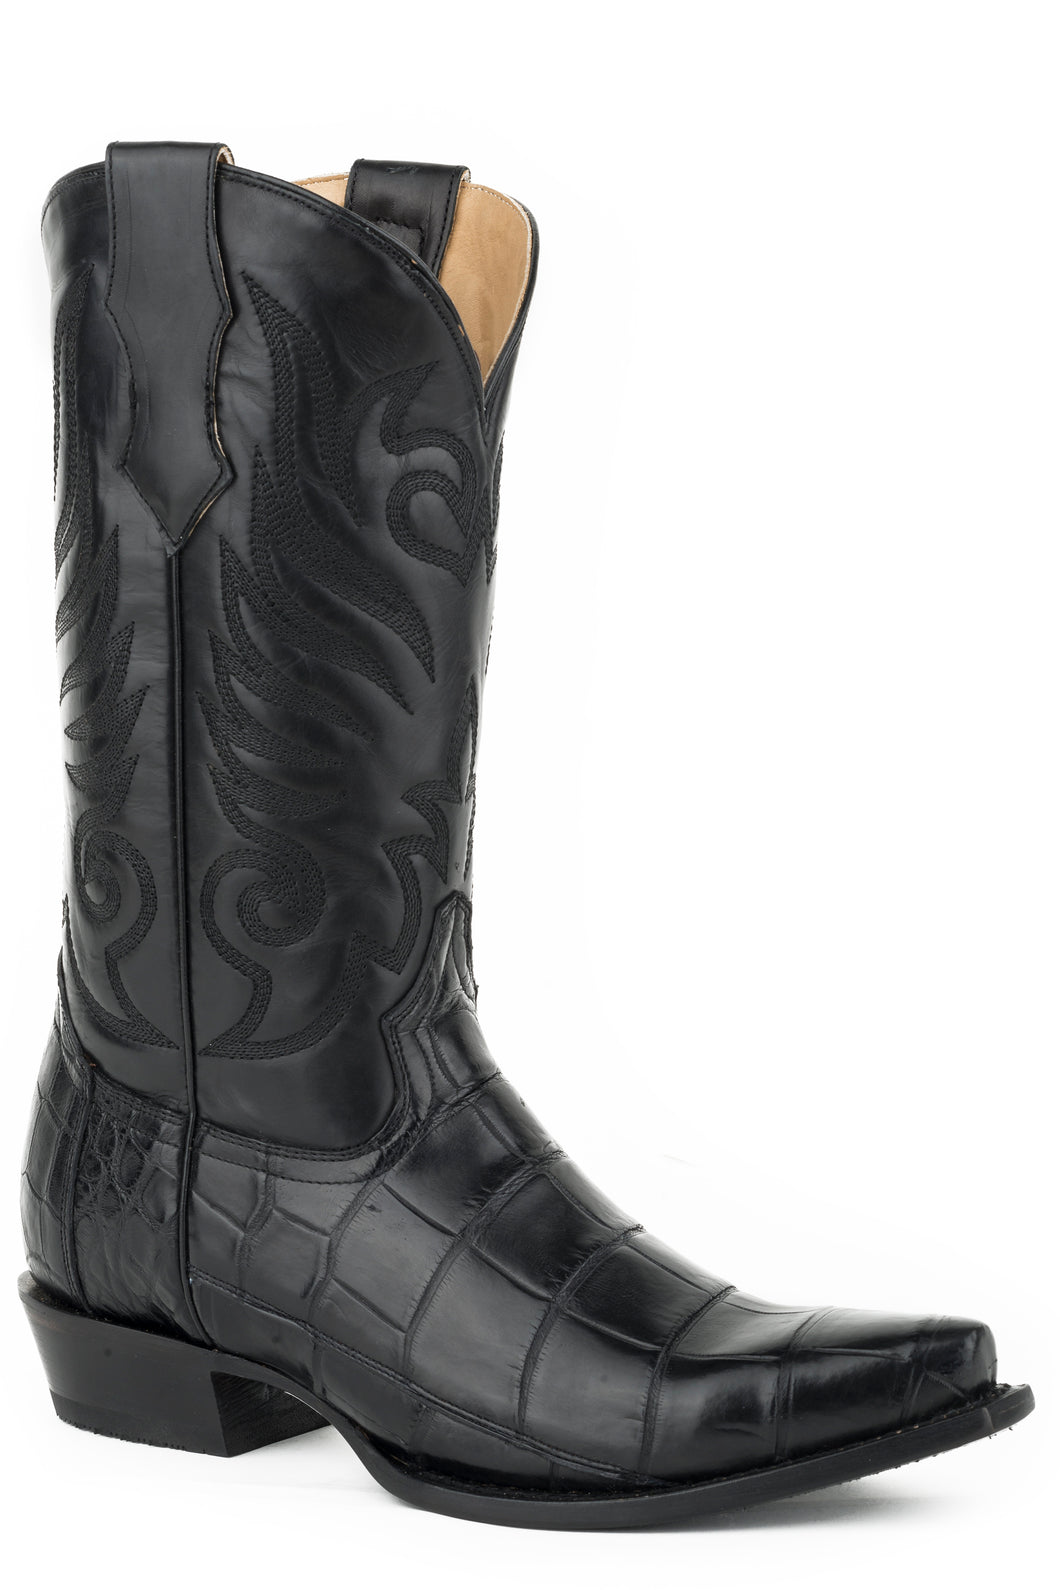 Dynamite Boot Mens Boots Polished Black American Alligator Vamp